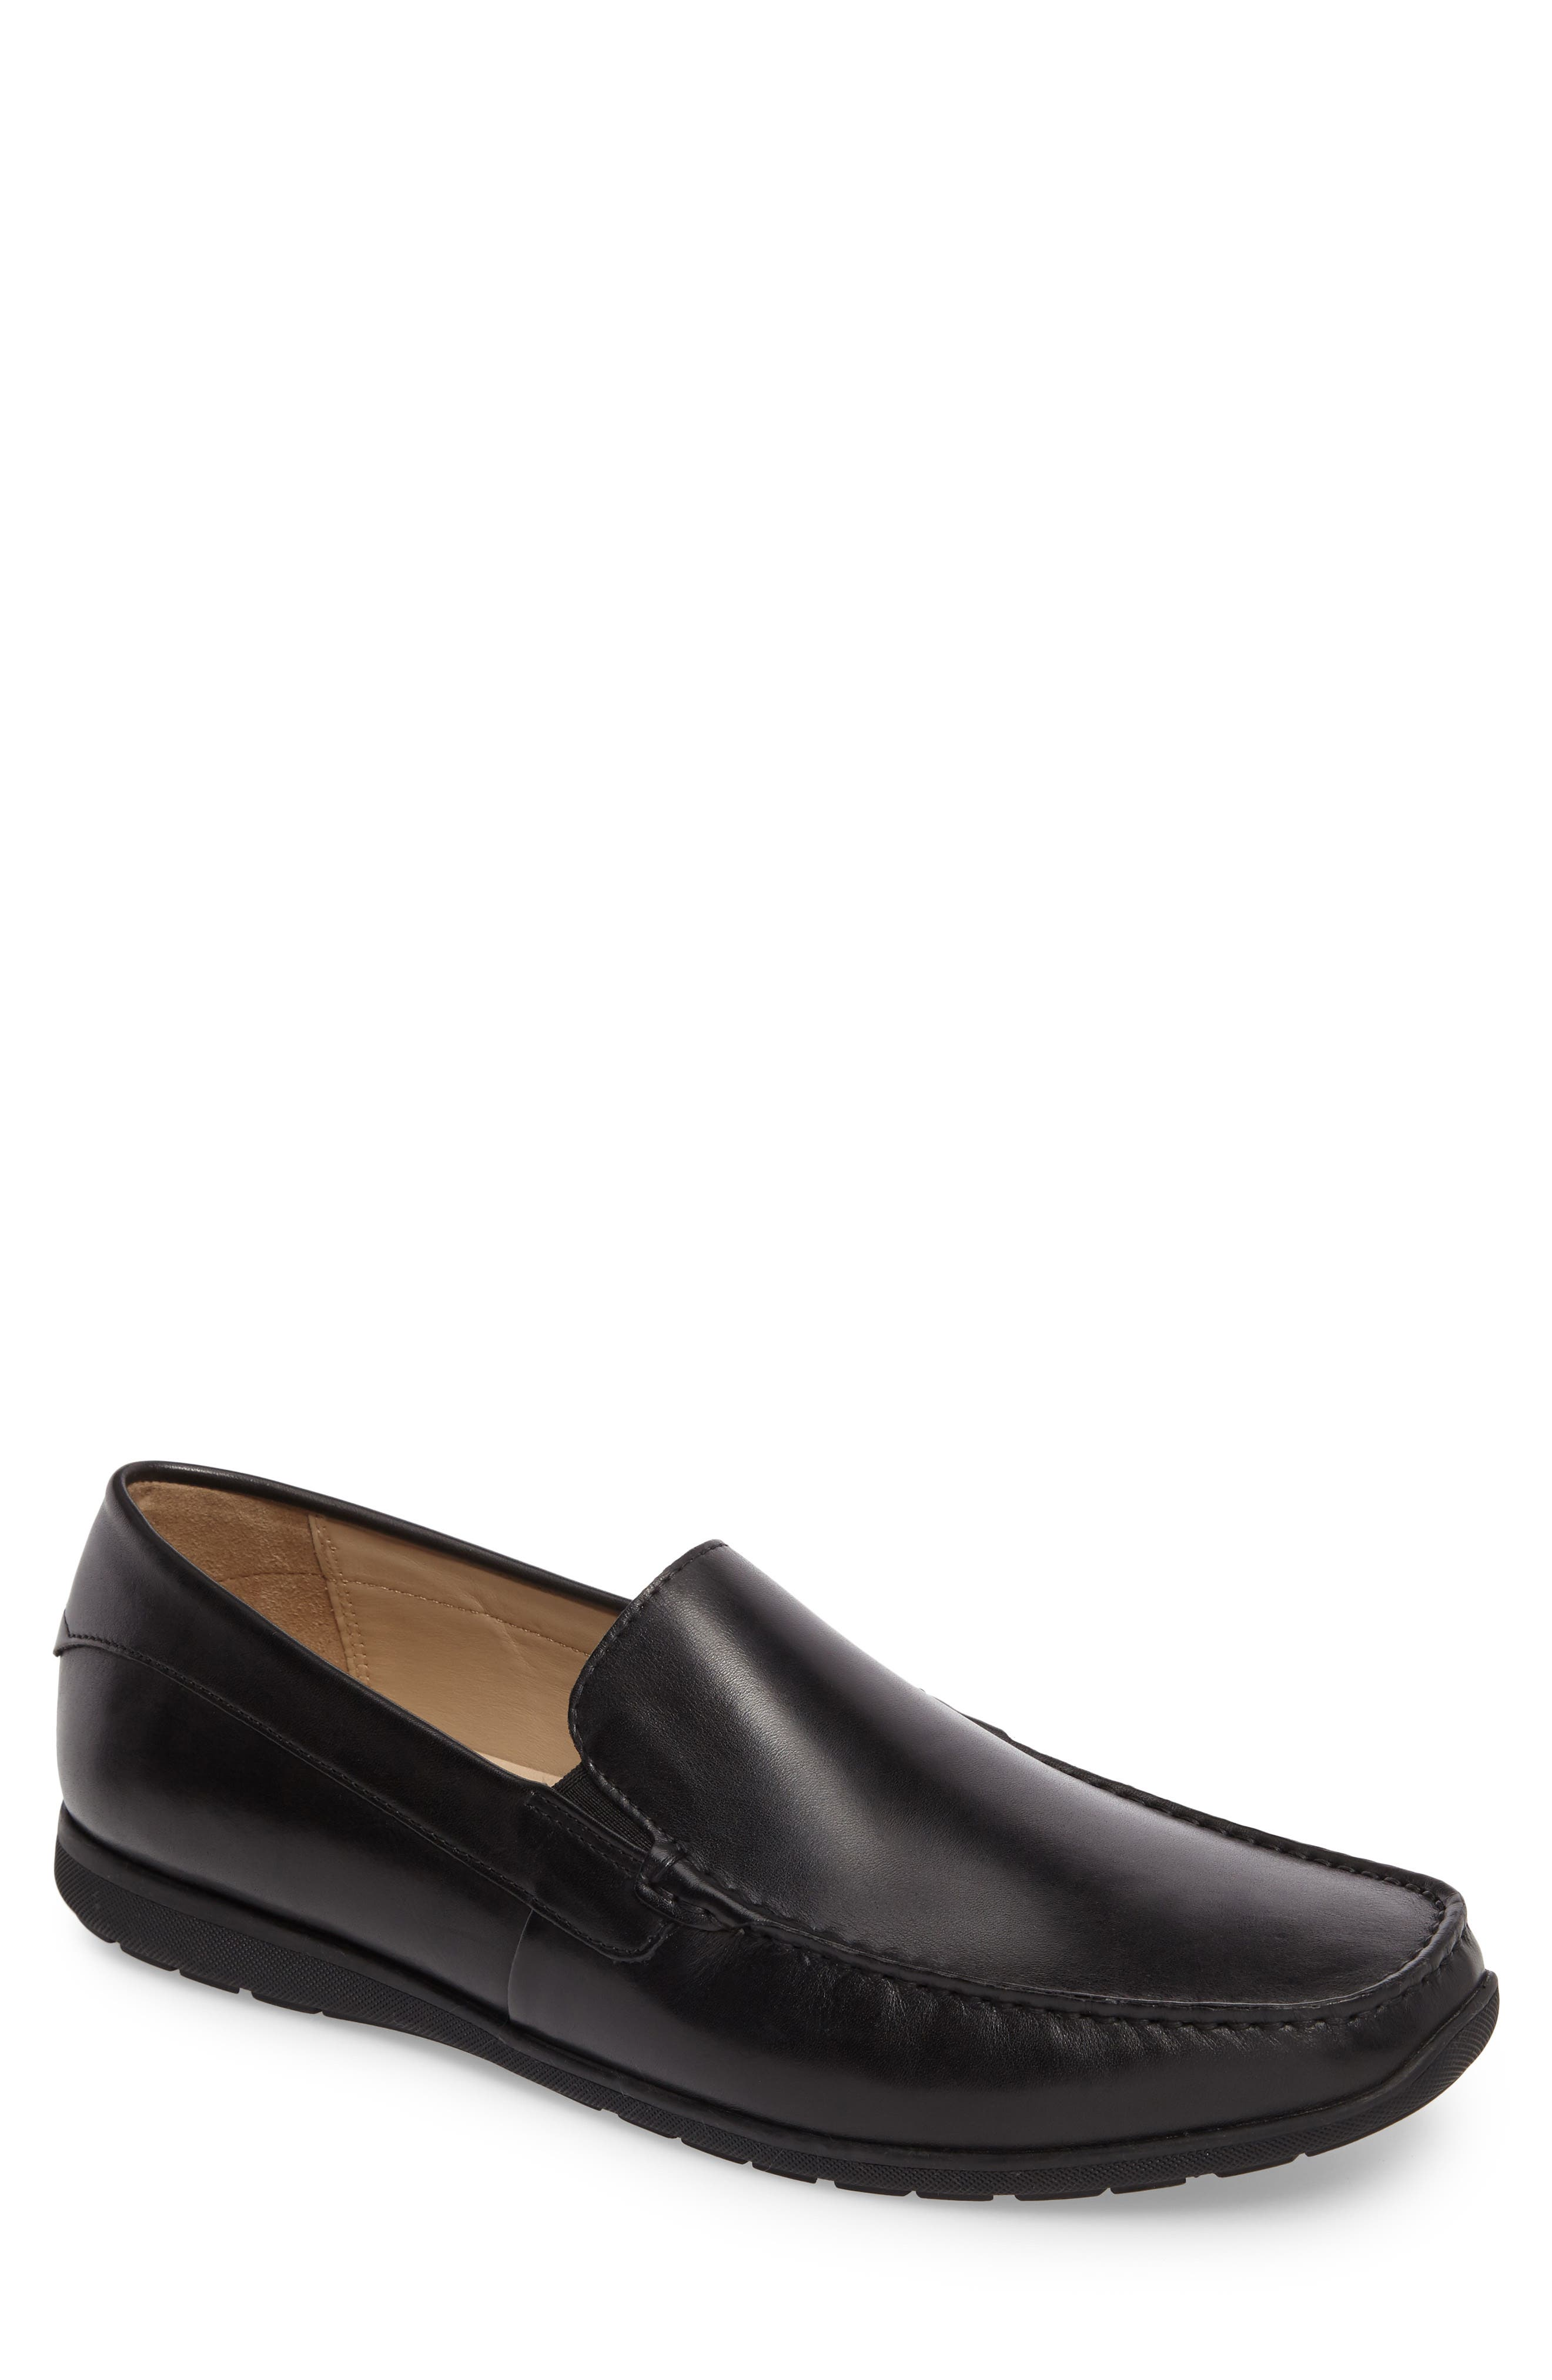 Classic Loafer,                             Main thumbnail 1, color,                             001